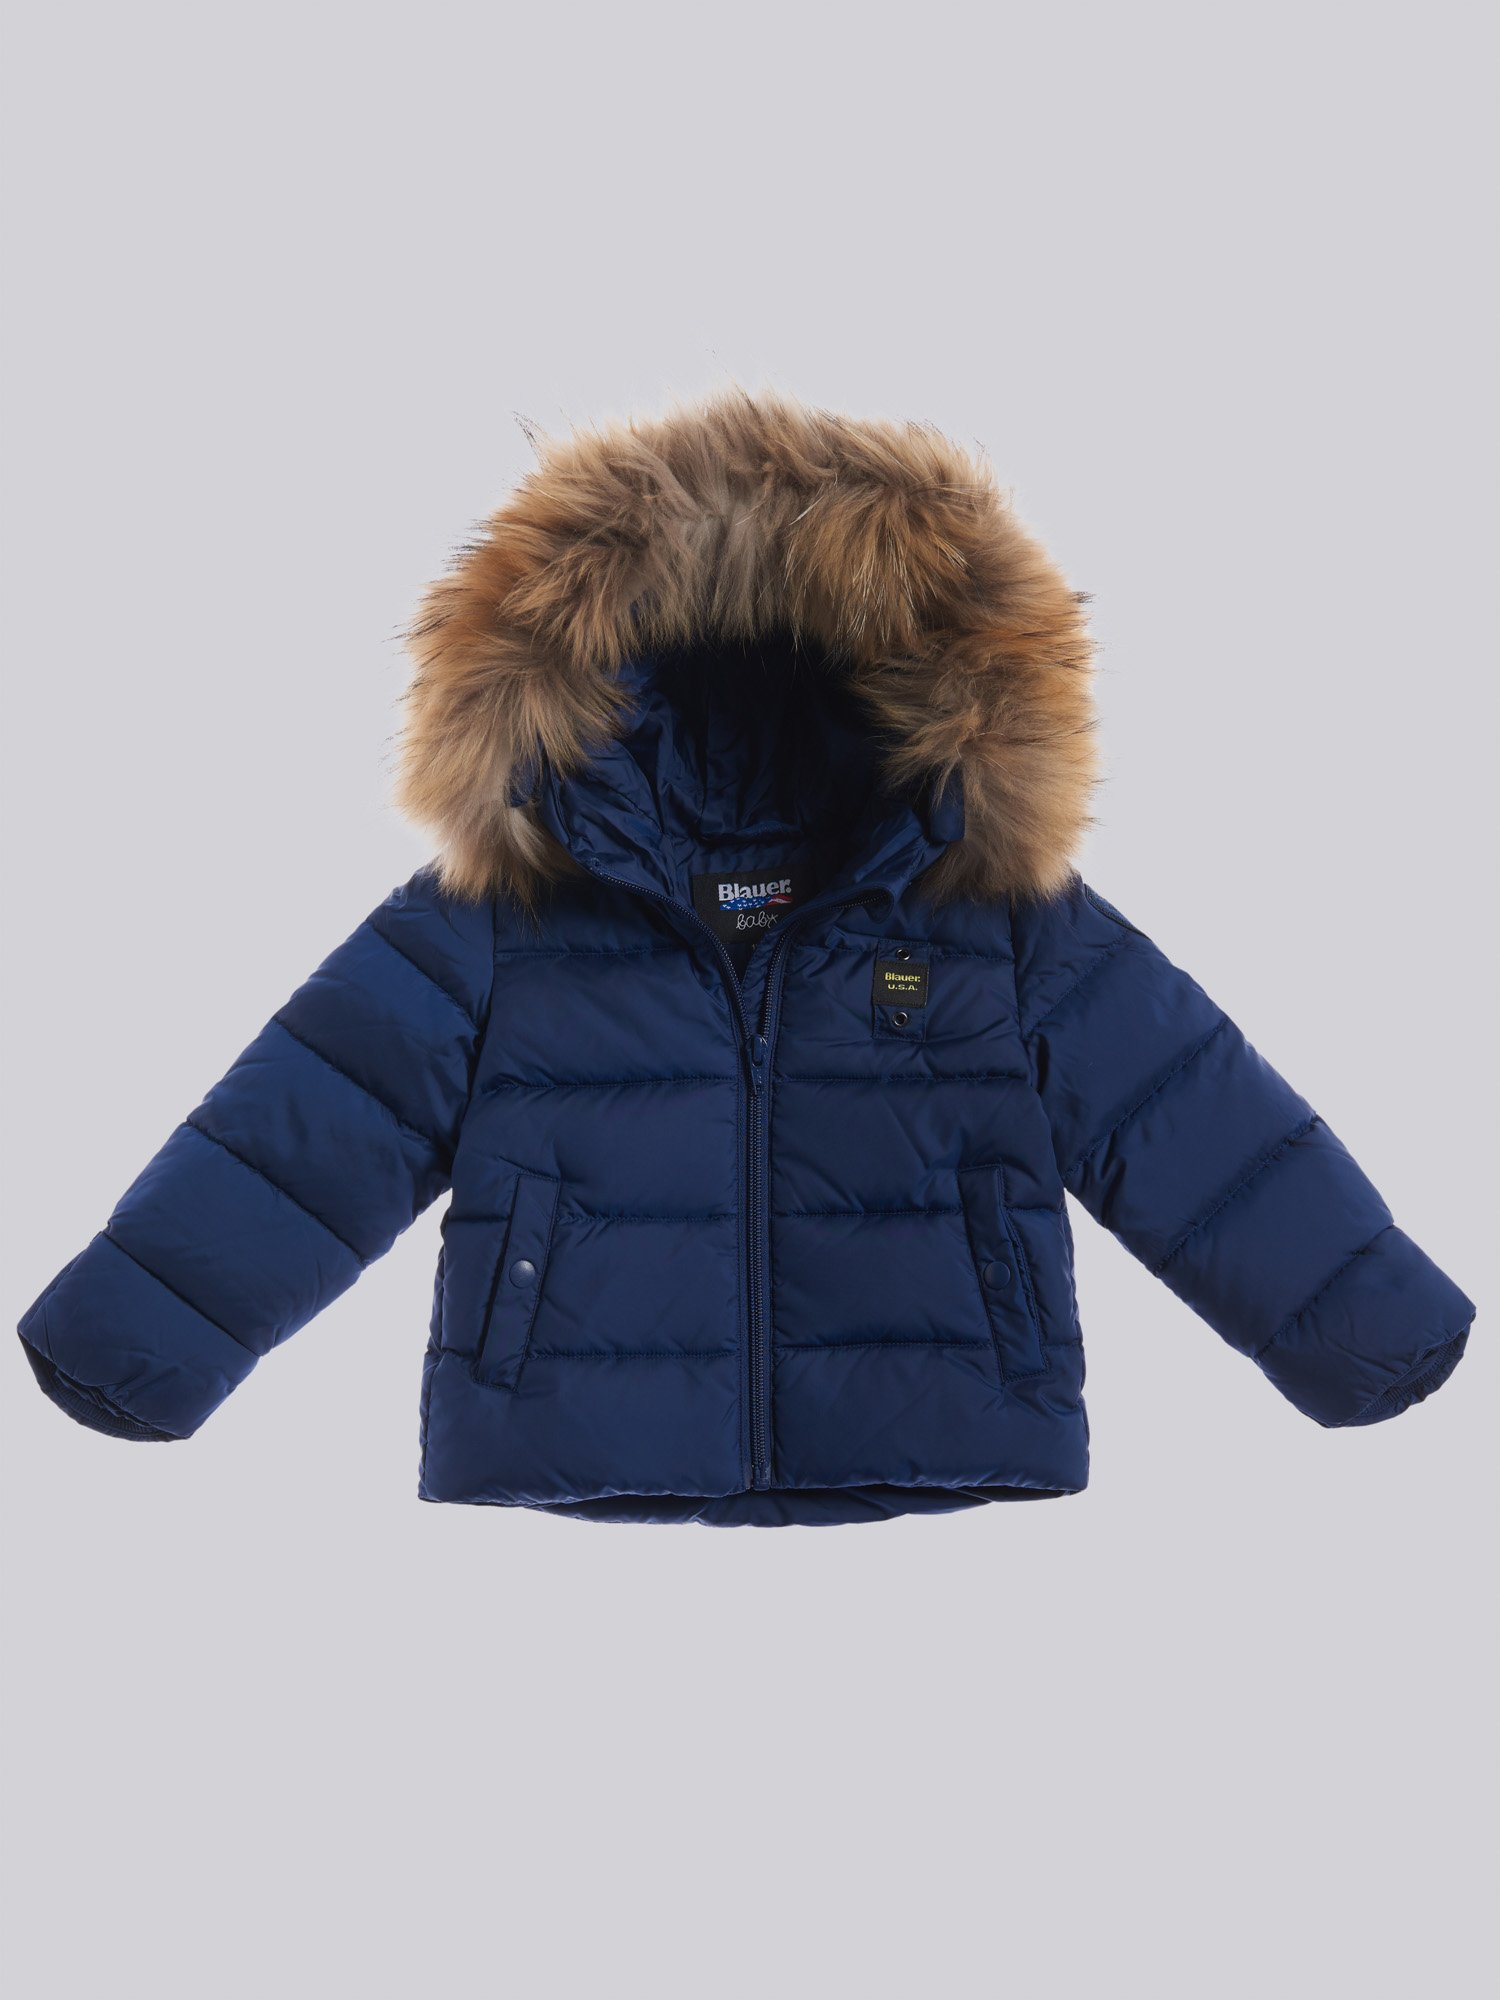 LUIS BABY DOWN JACKET WITH HOOD AND FUR - Blauer